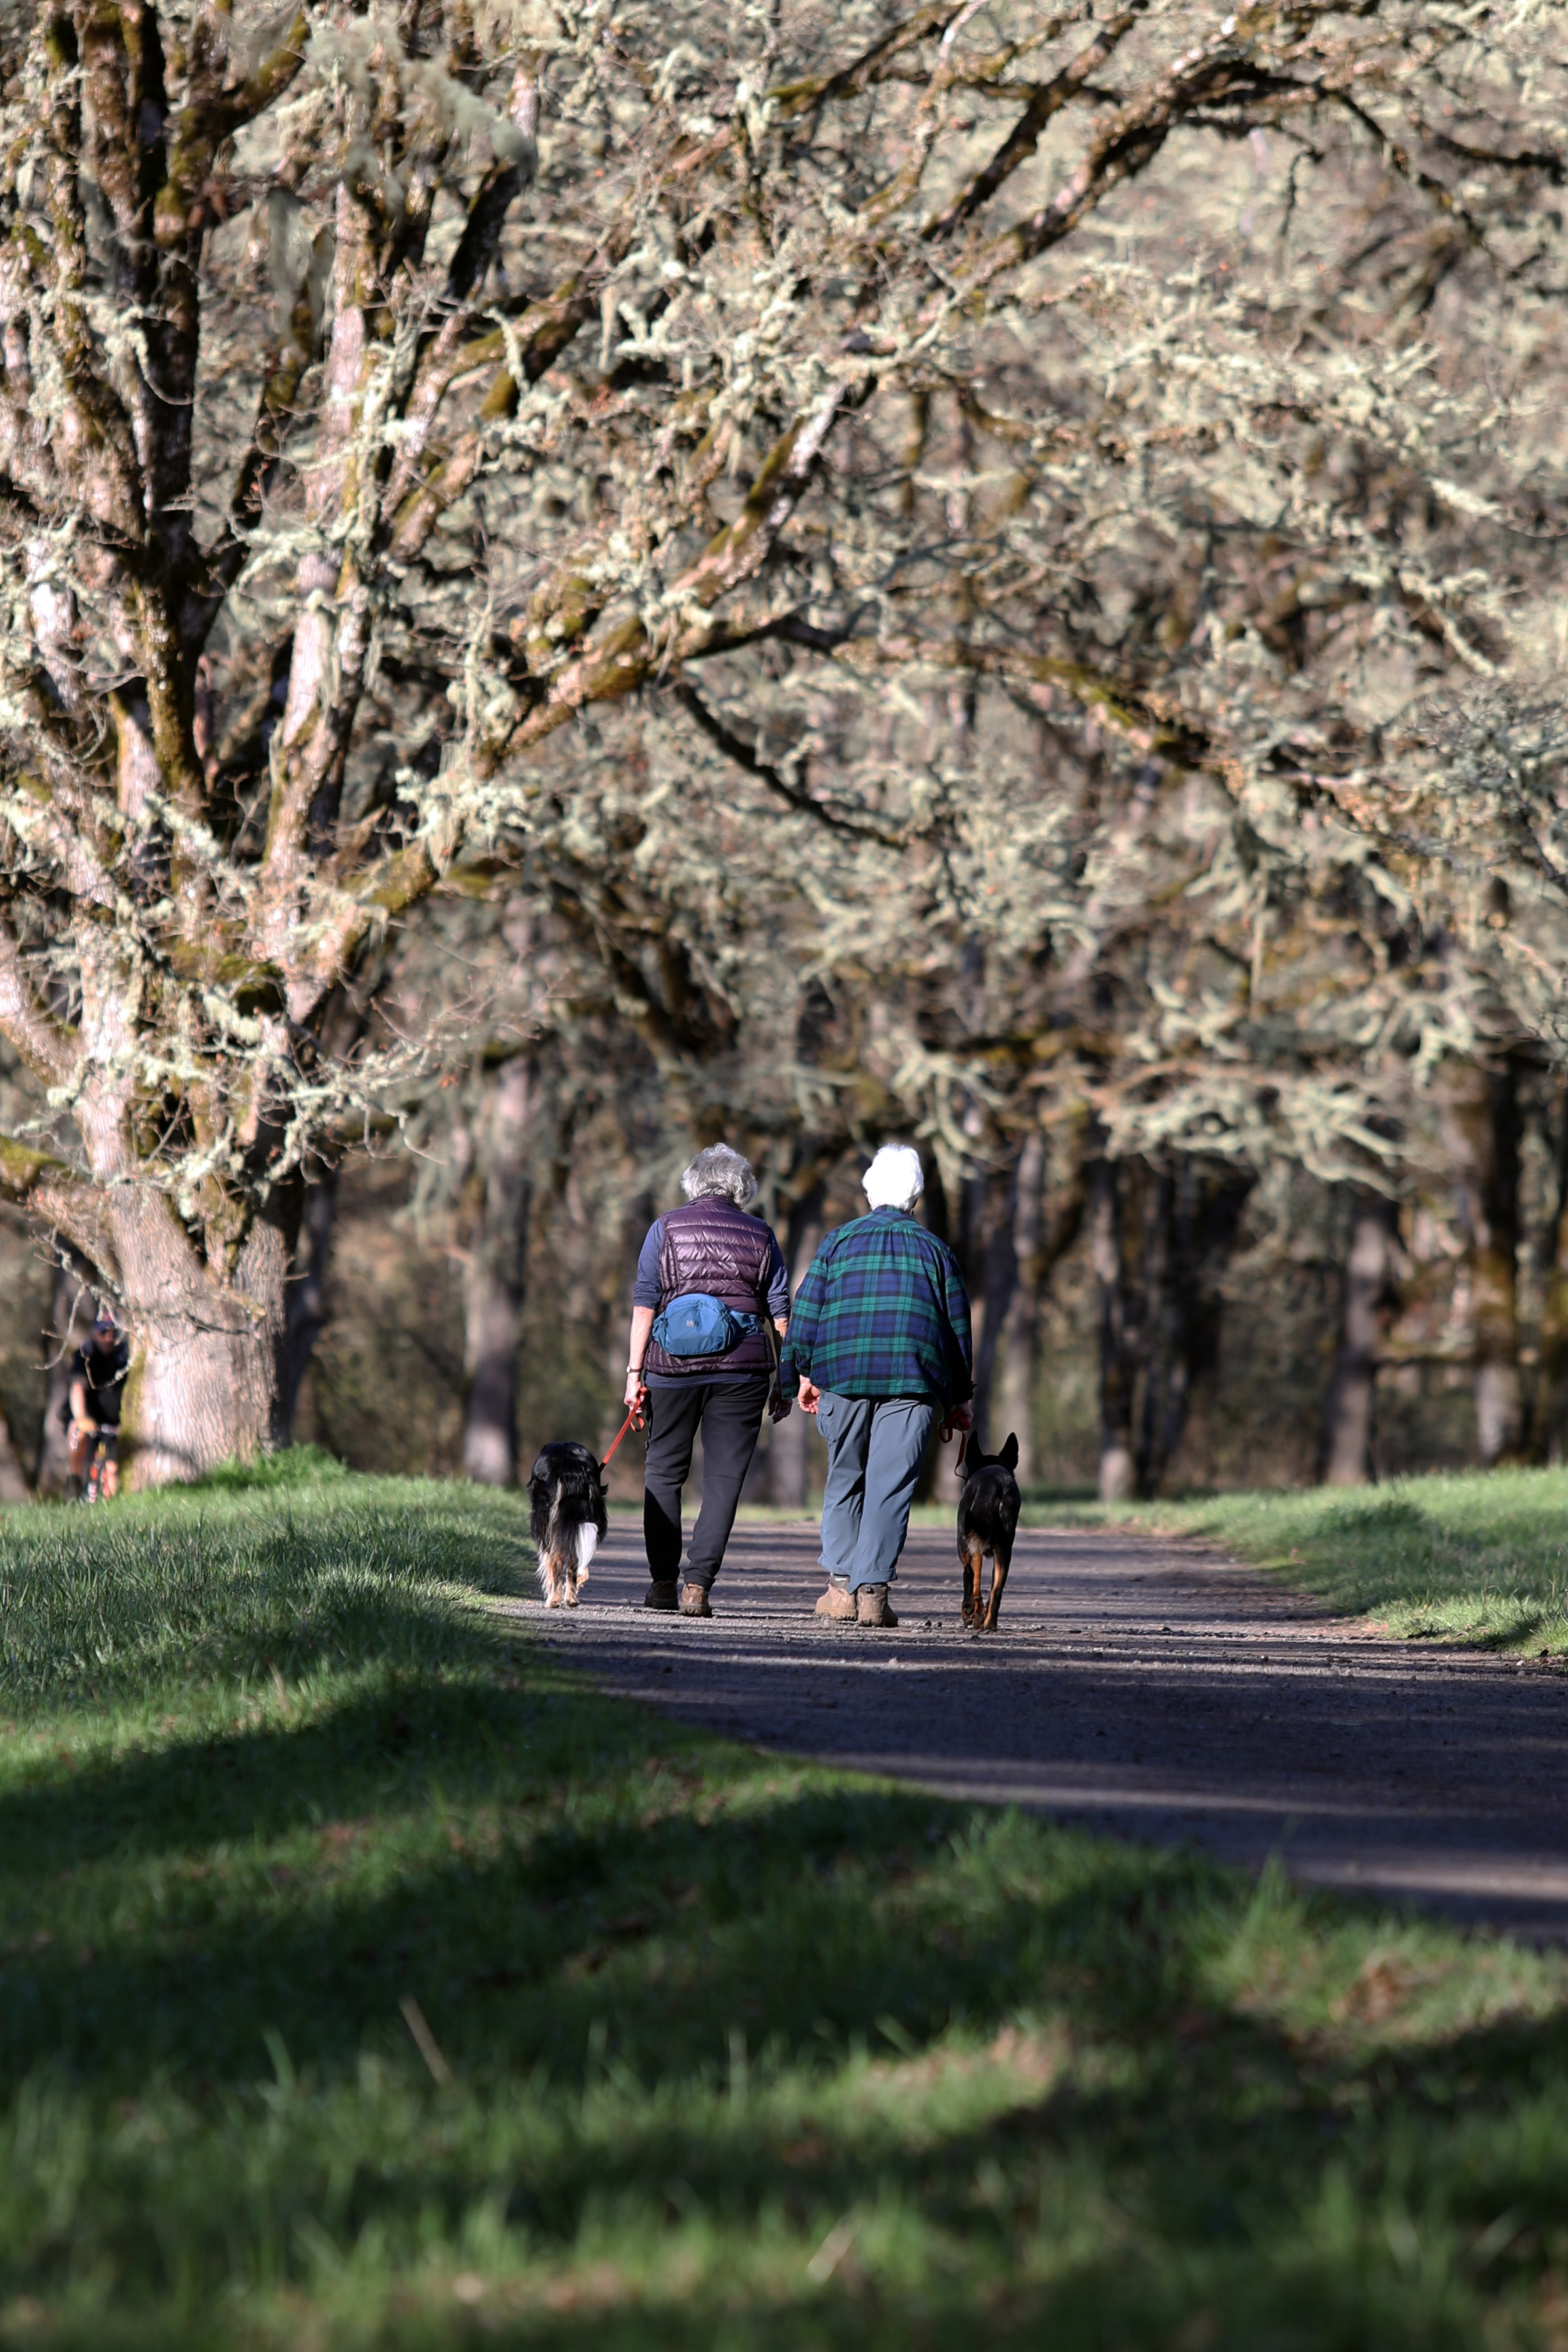 Two people walking on road with their dogs on paved road under trees and next to grassy fields